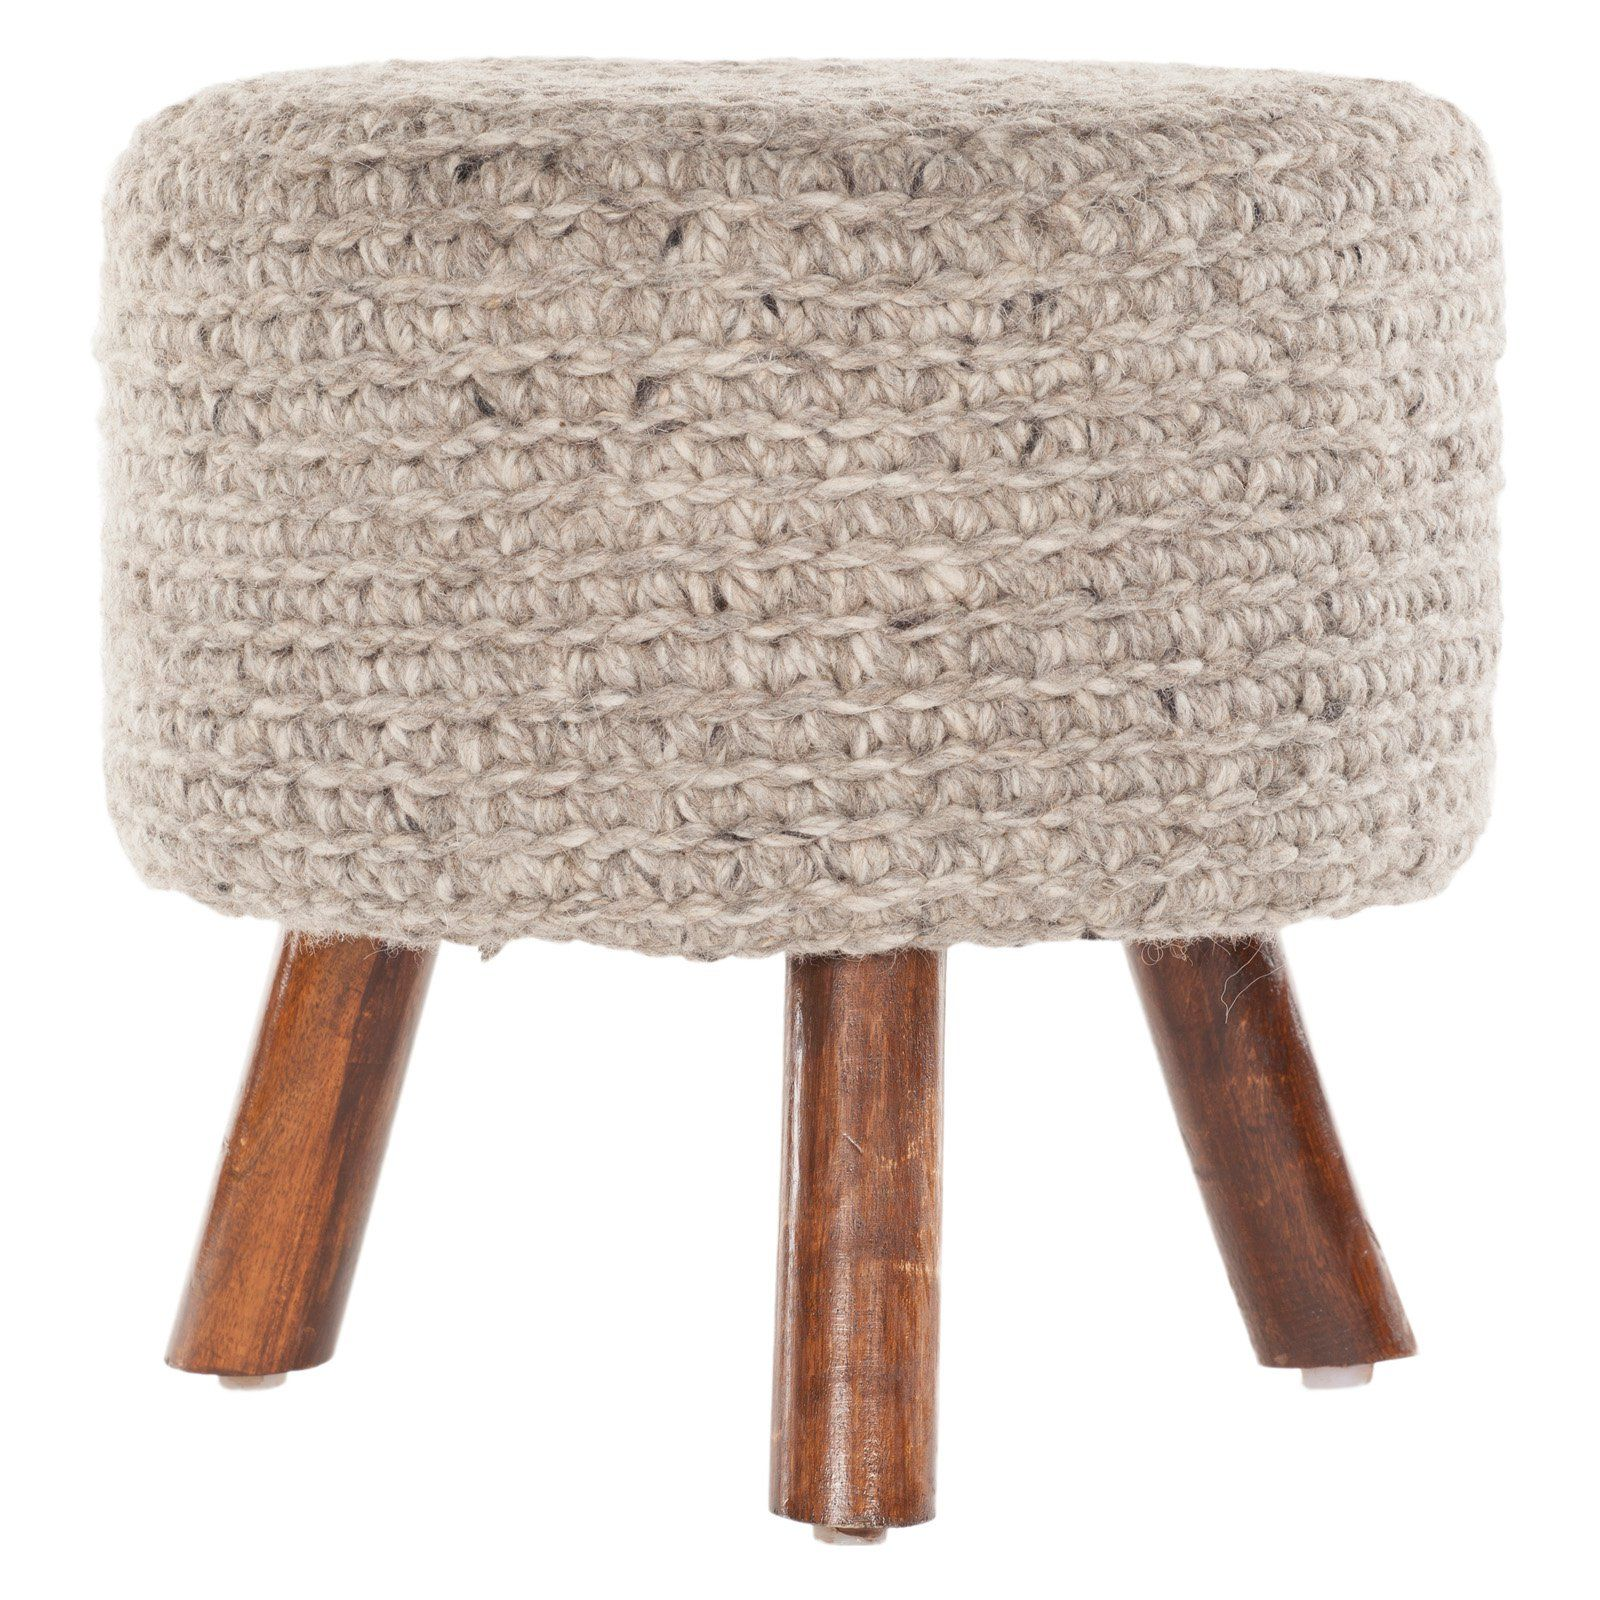 Chandra Ida Handmade Stool - From Hayneedlecom